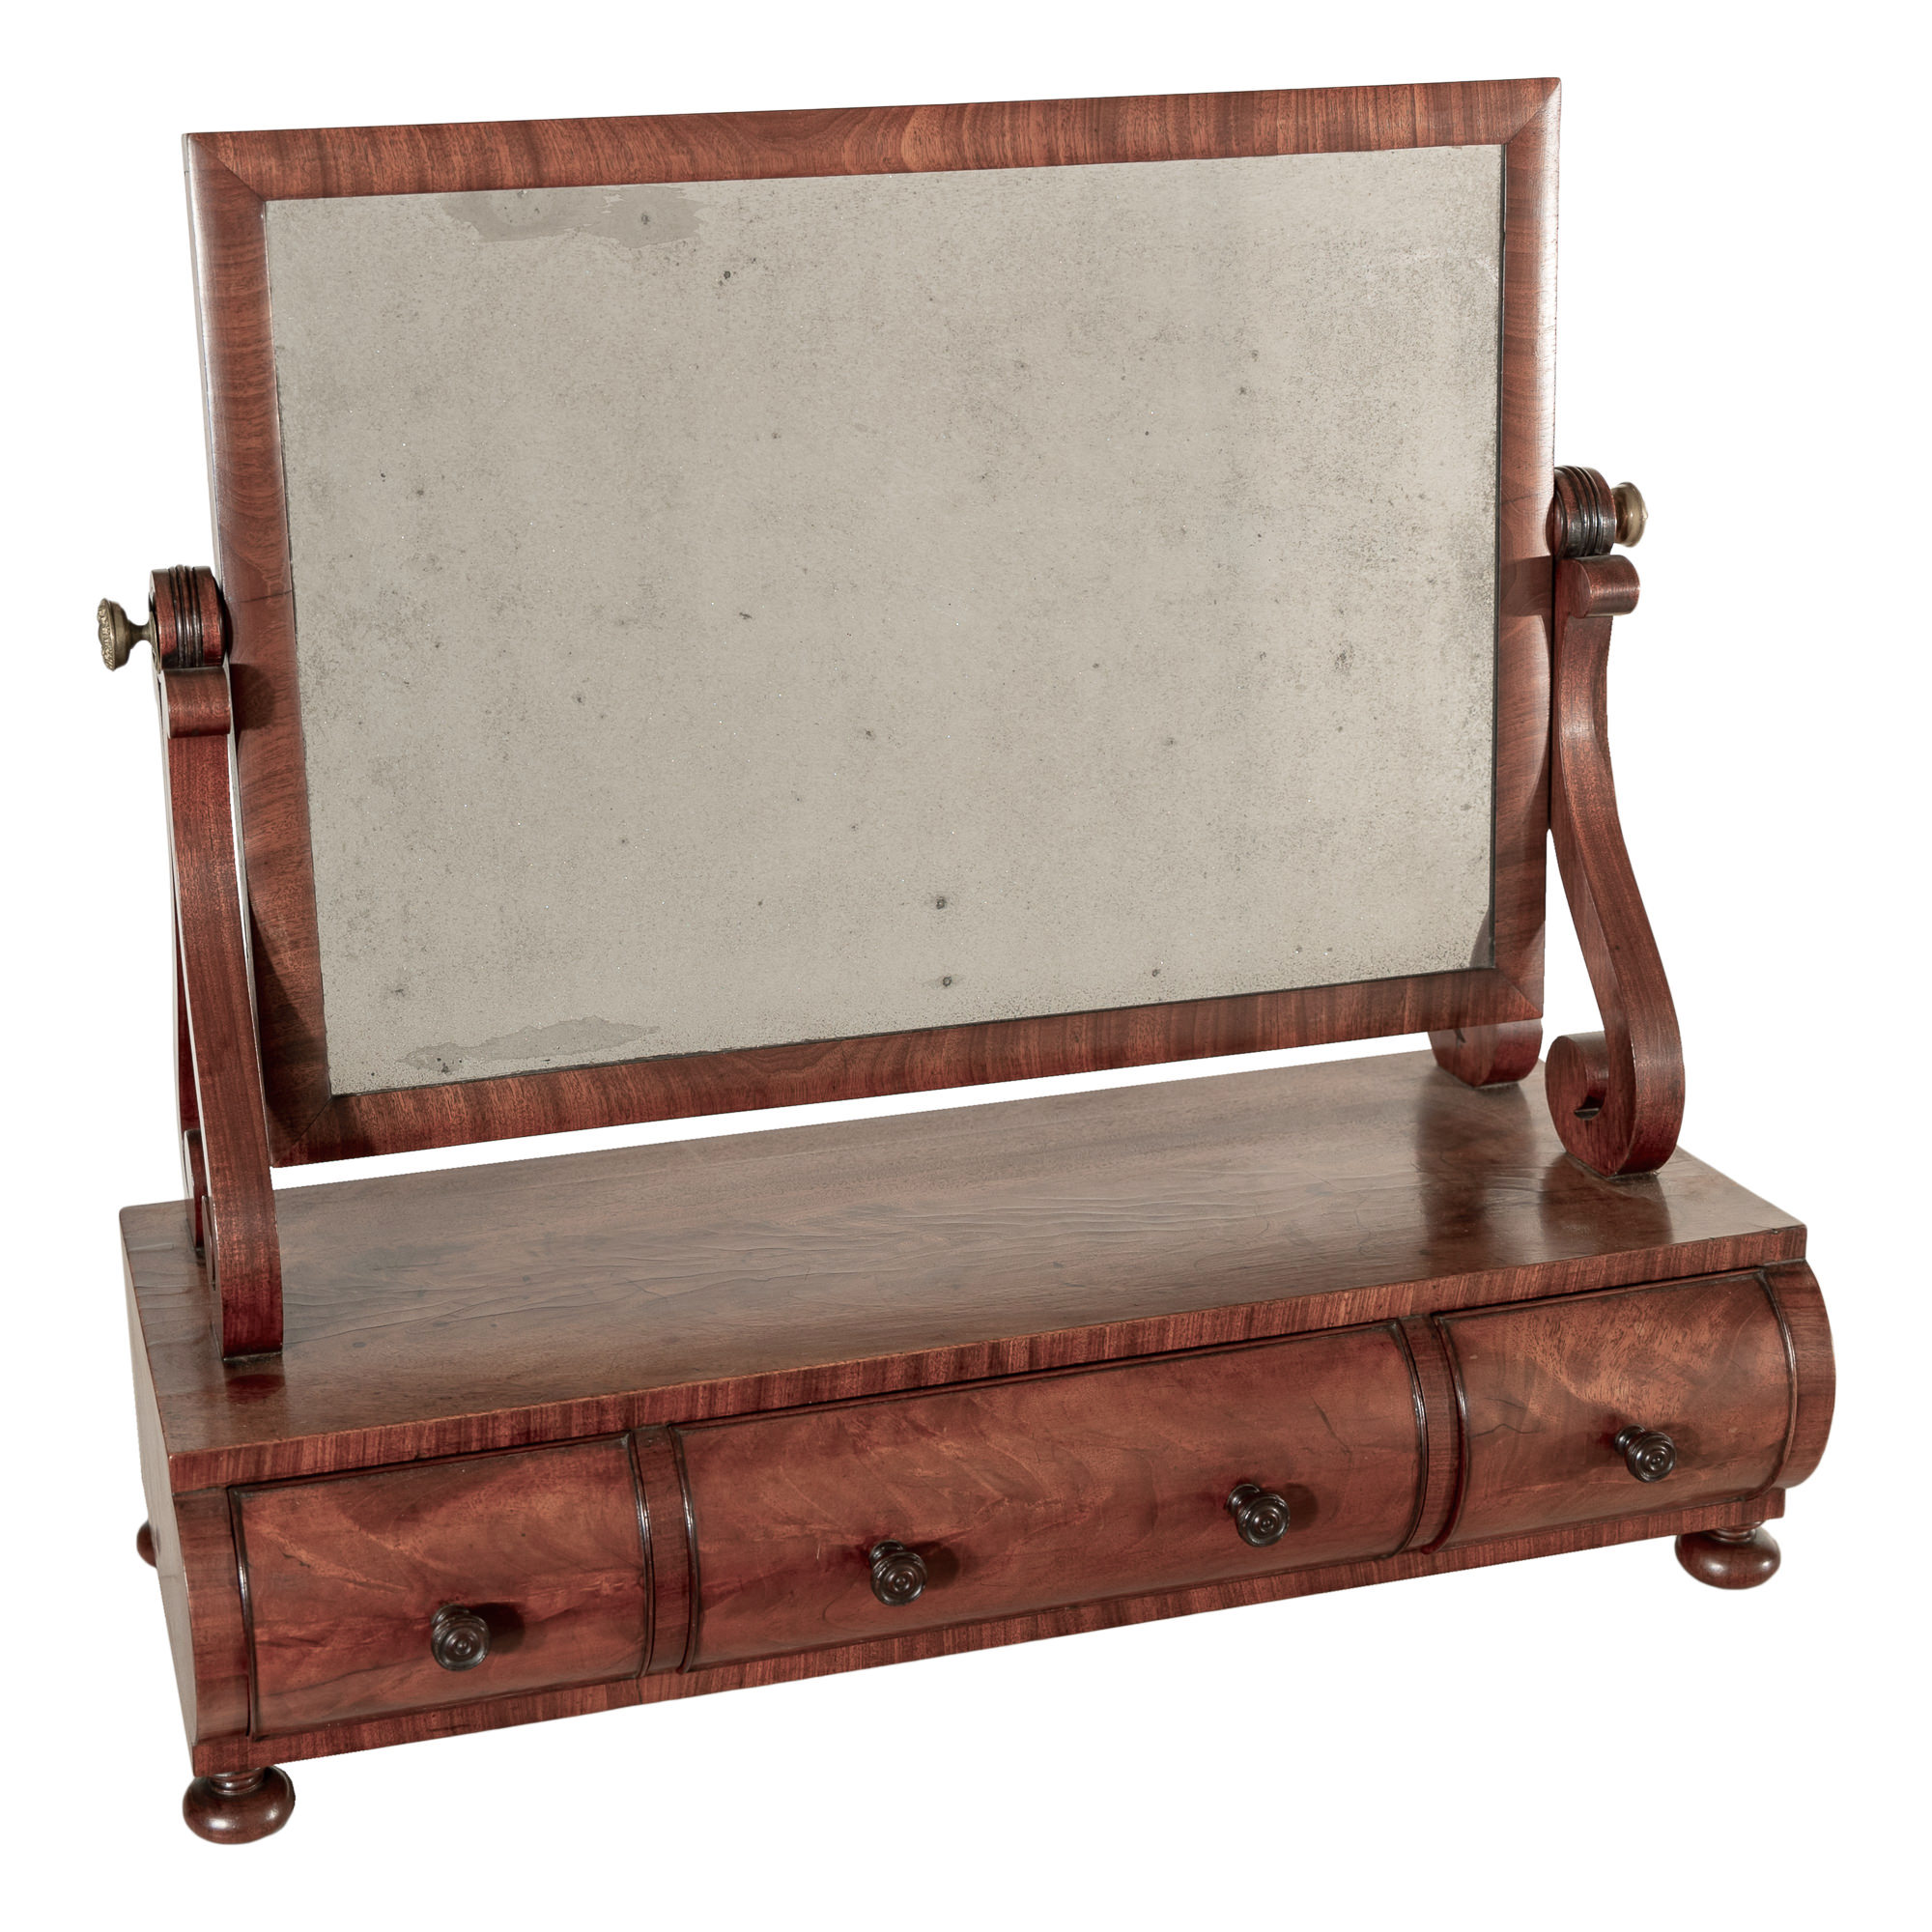 'Georgian Mahogany Toilet Mirror with Three Cylinder Fronted Drawers Early 19th Century'